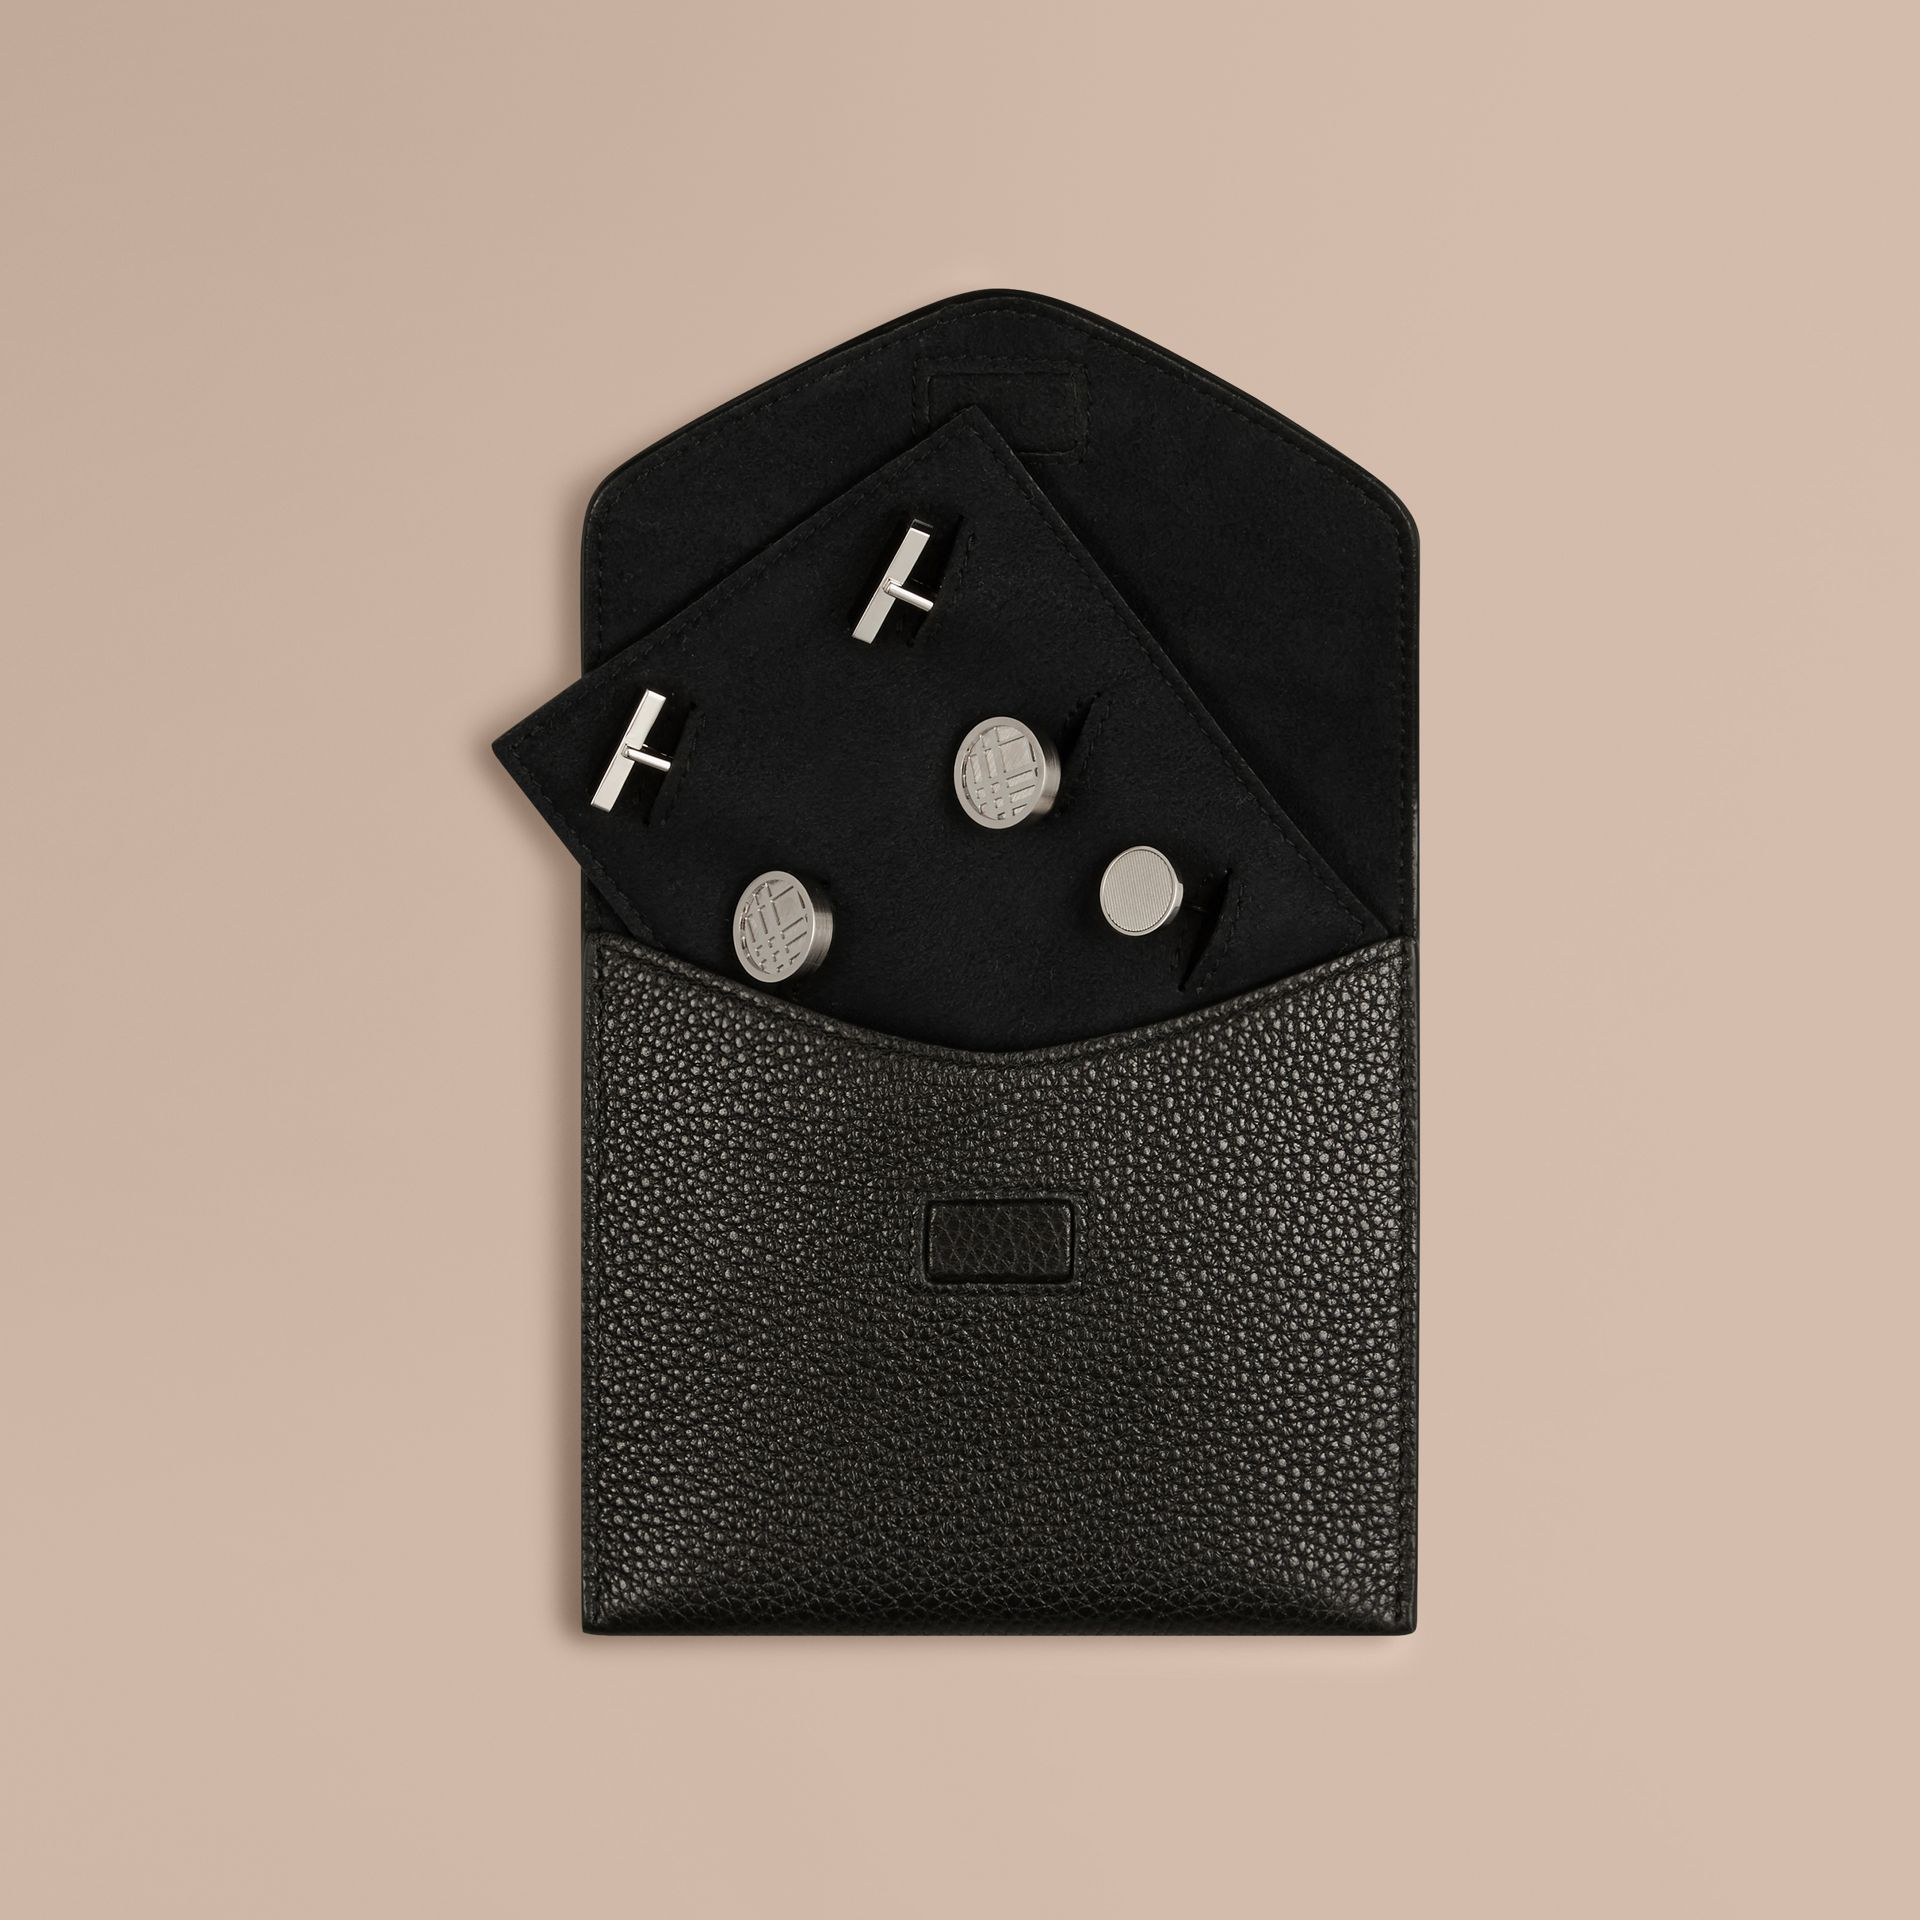 Grainy Leather Cufflink Case in Black - Men | Burberry - gallery image 1